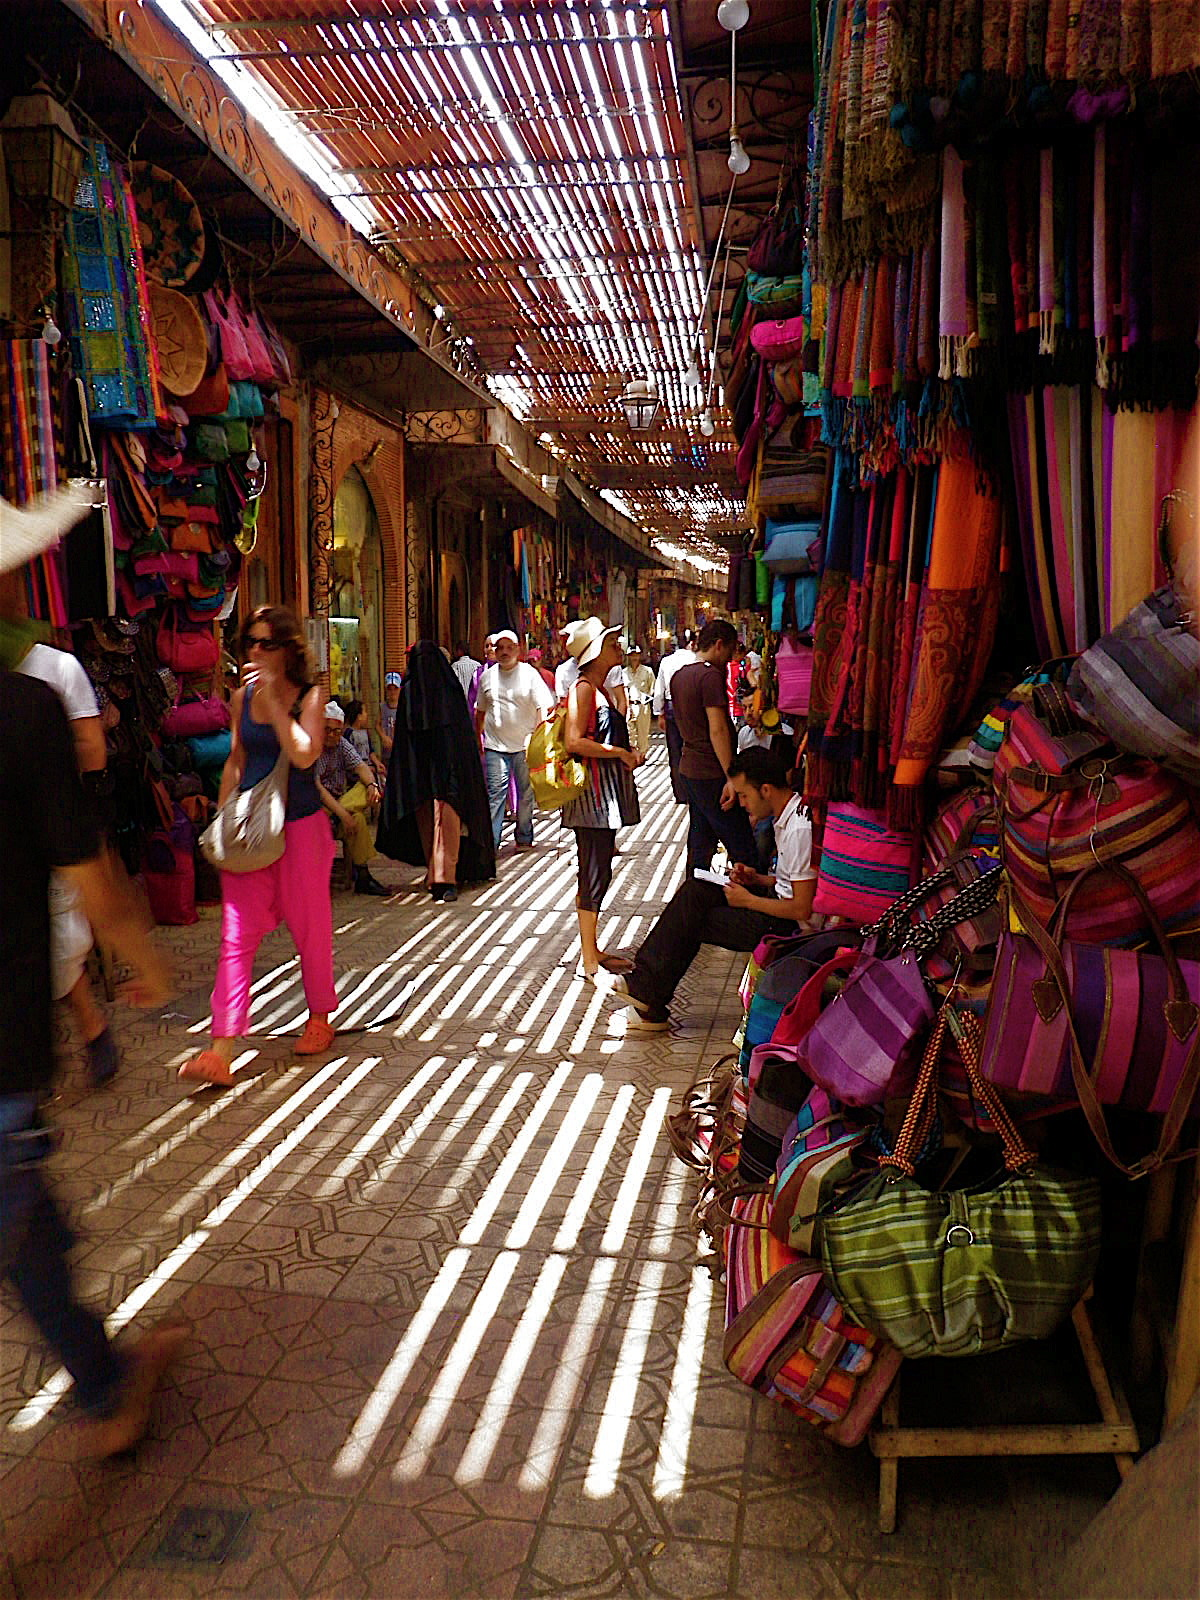 The Medina in Marrakesh…  Dreaming of warm summer days.